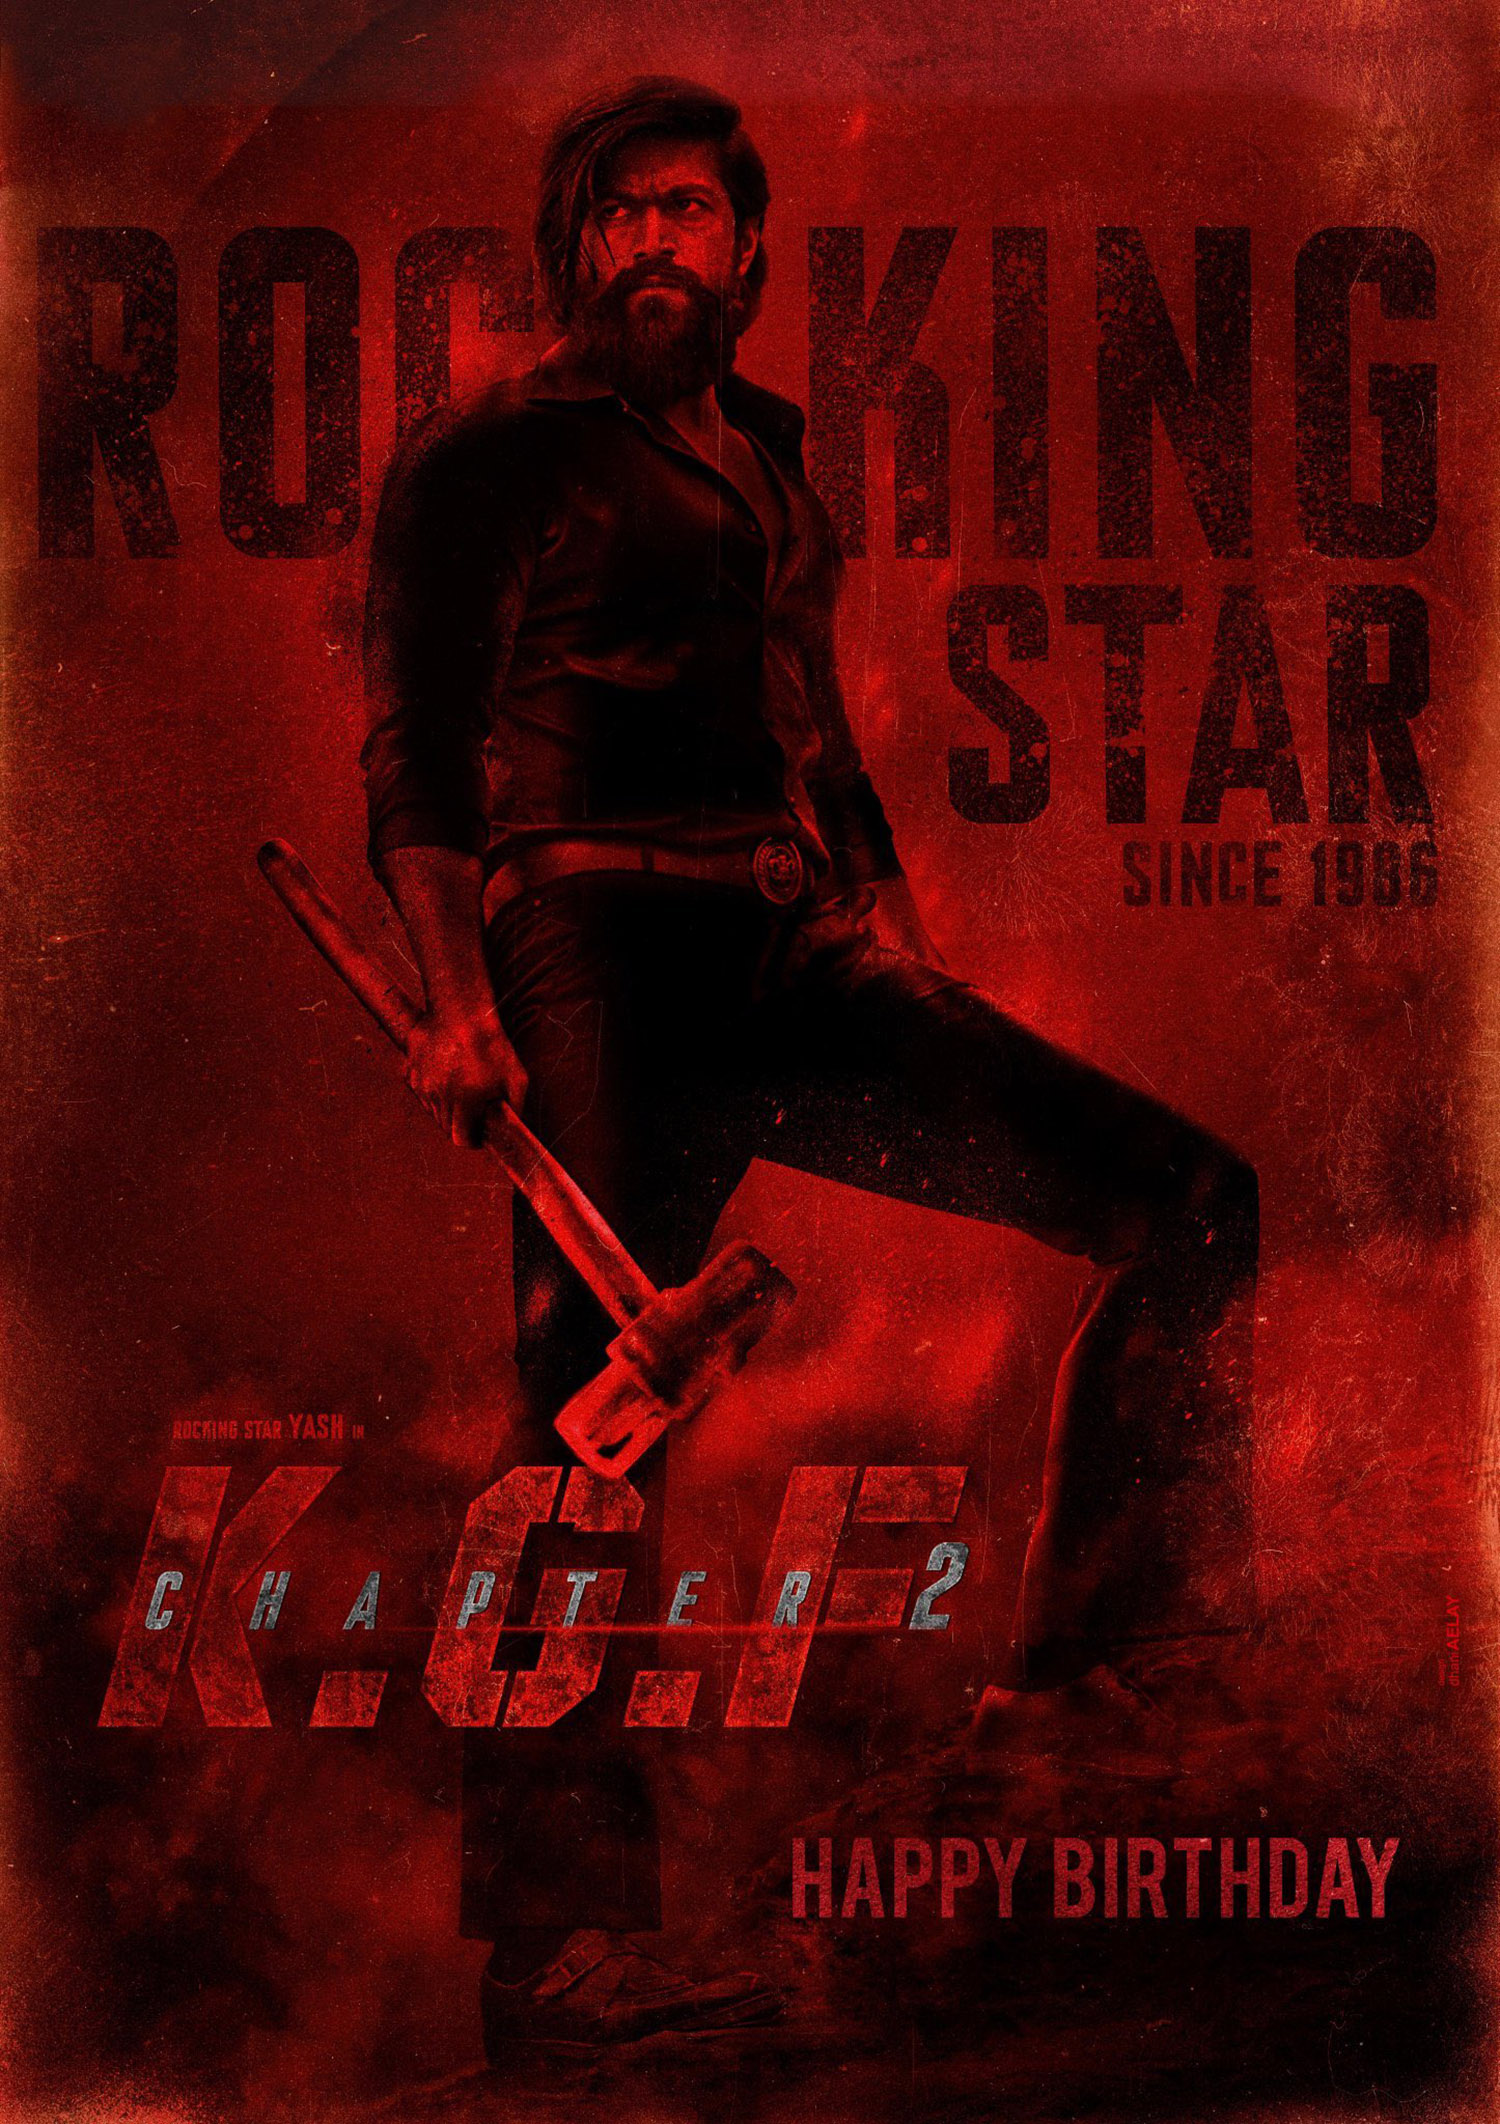 KGF 2,actor yash,kgf chapter 2,kgf chapter 2 second look poster,kgf 2 new poster,yash in kgf,kgf chapter 2 updates,kgf 2 updates,actor yash latest news